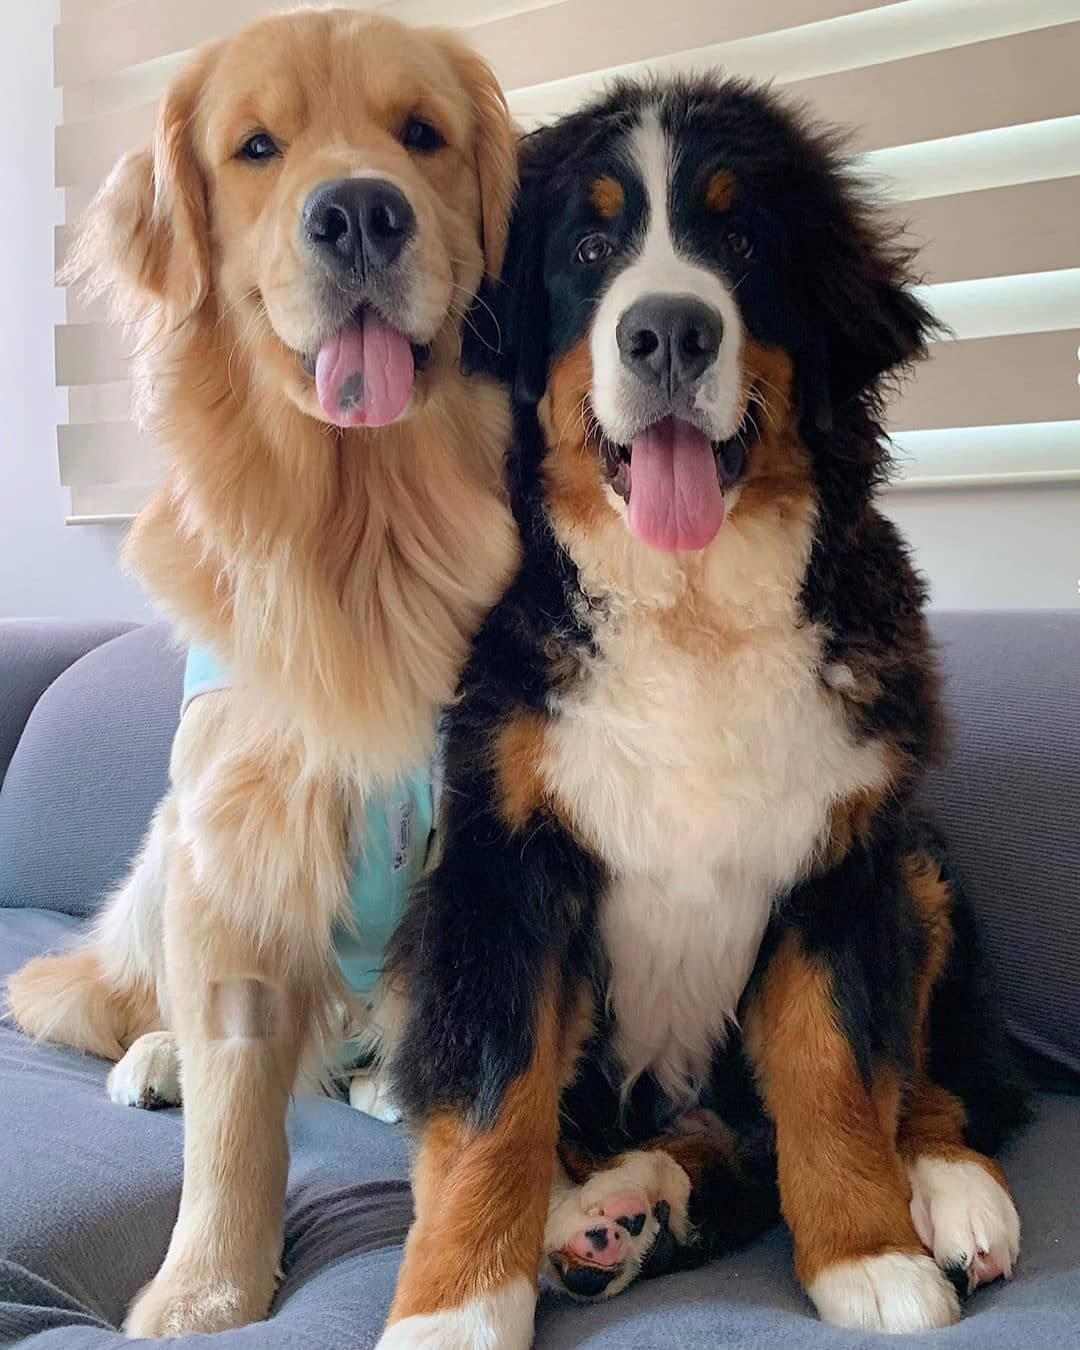 36 7k 次赞 557 条评论 Golden Retrievers Retrieverpuppies 在 Instagram 发布 Tag Ya Best Friend Gold In 2020 Golden Retriever Cute Dogs And Puppies Dogs And Puppies